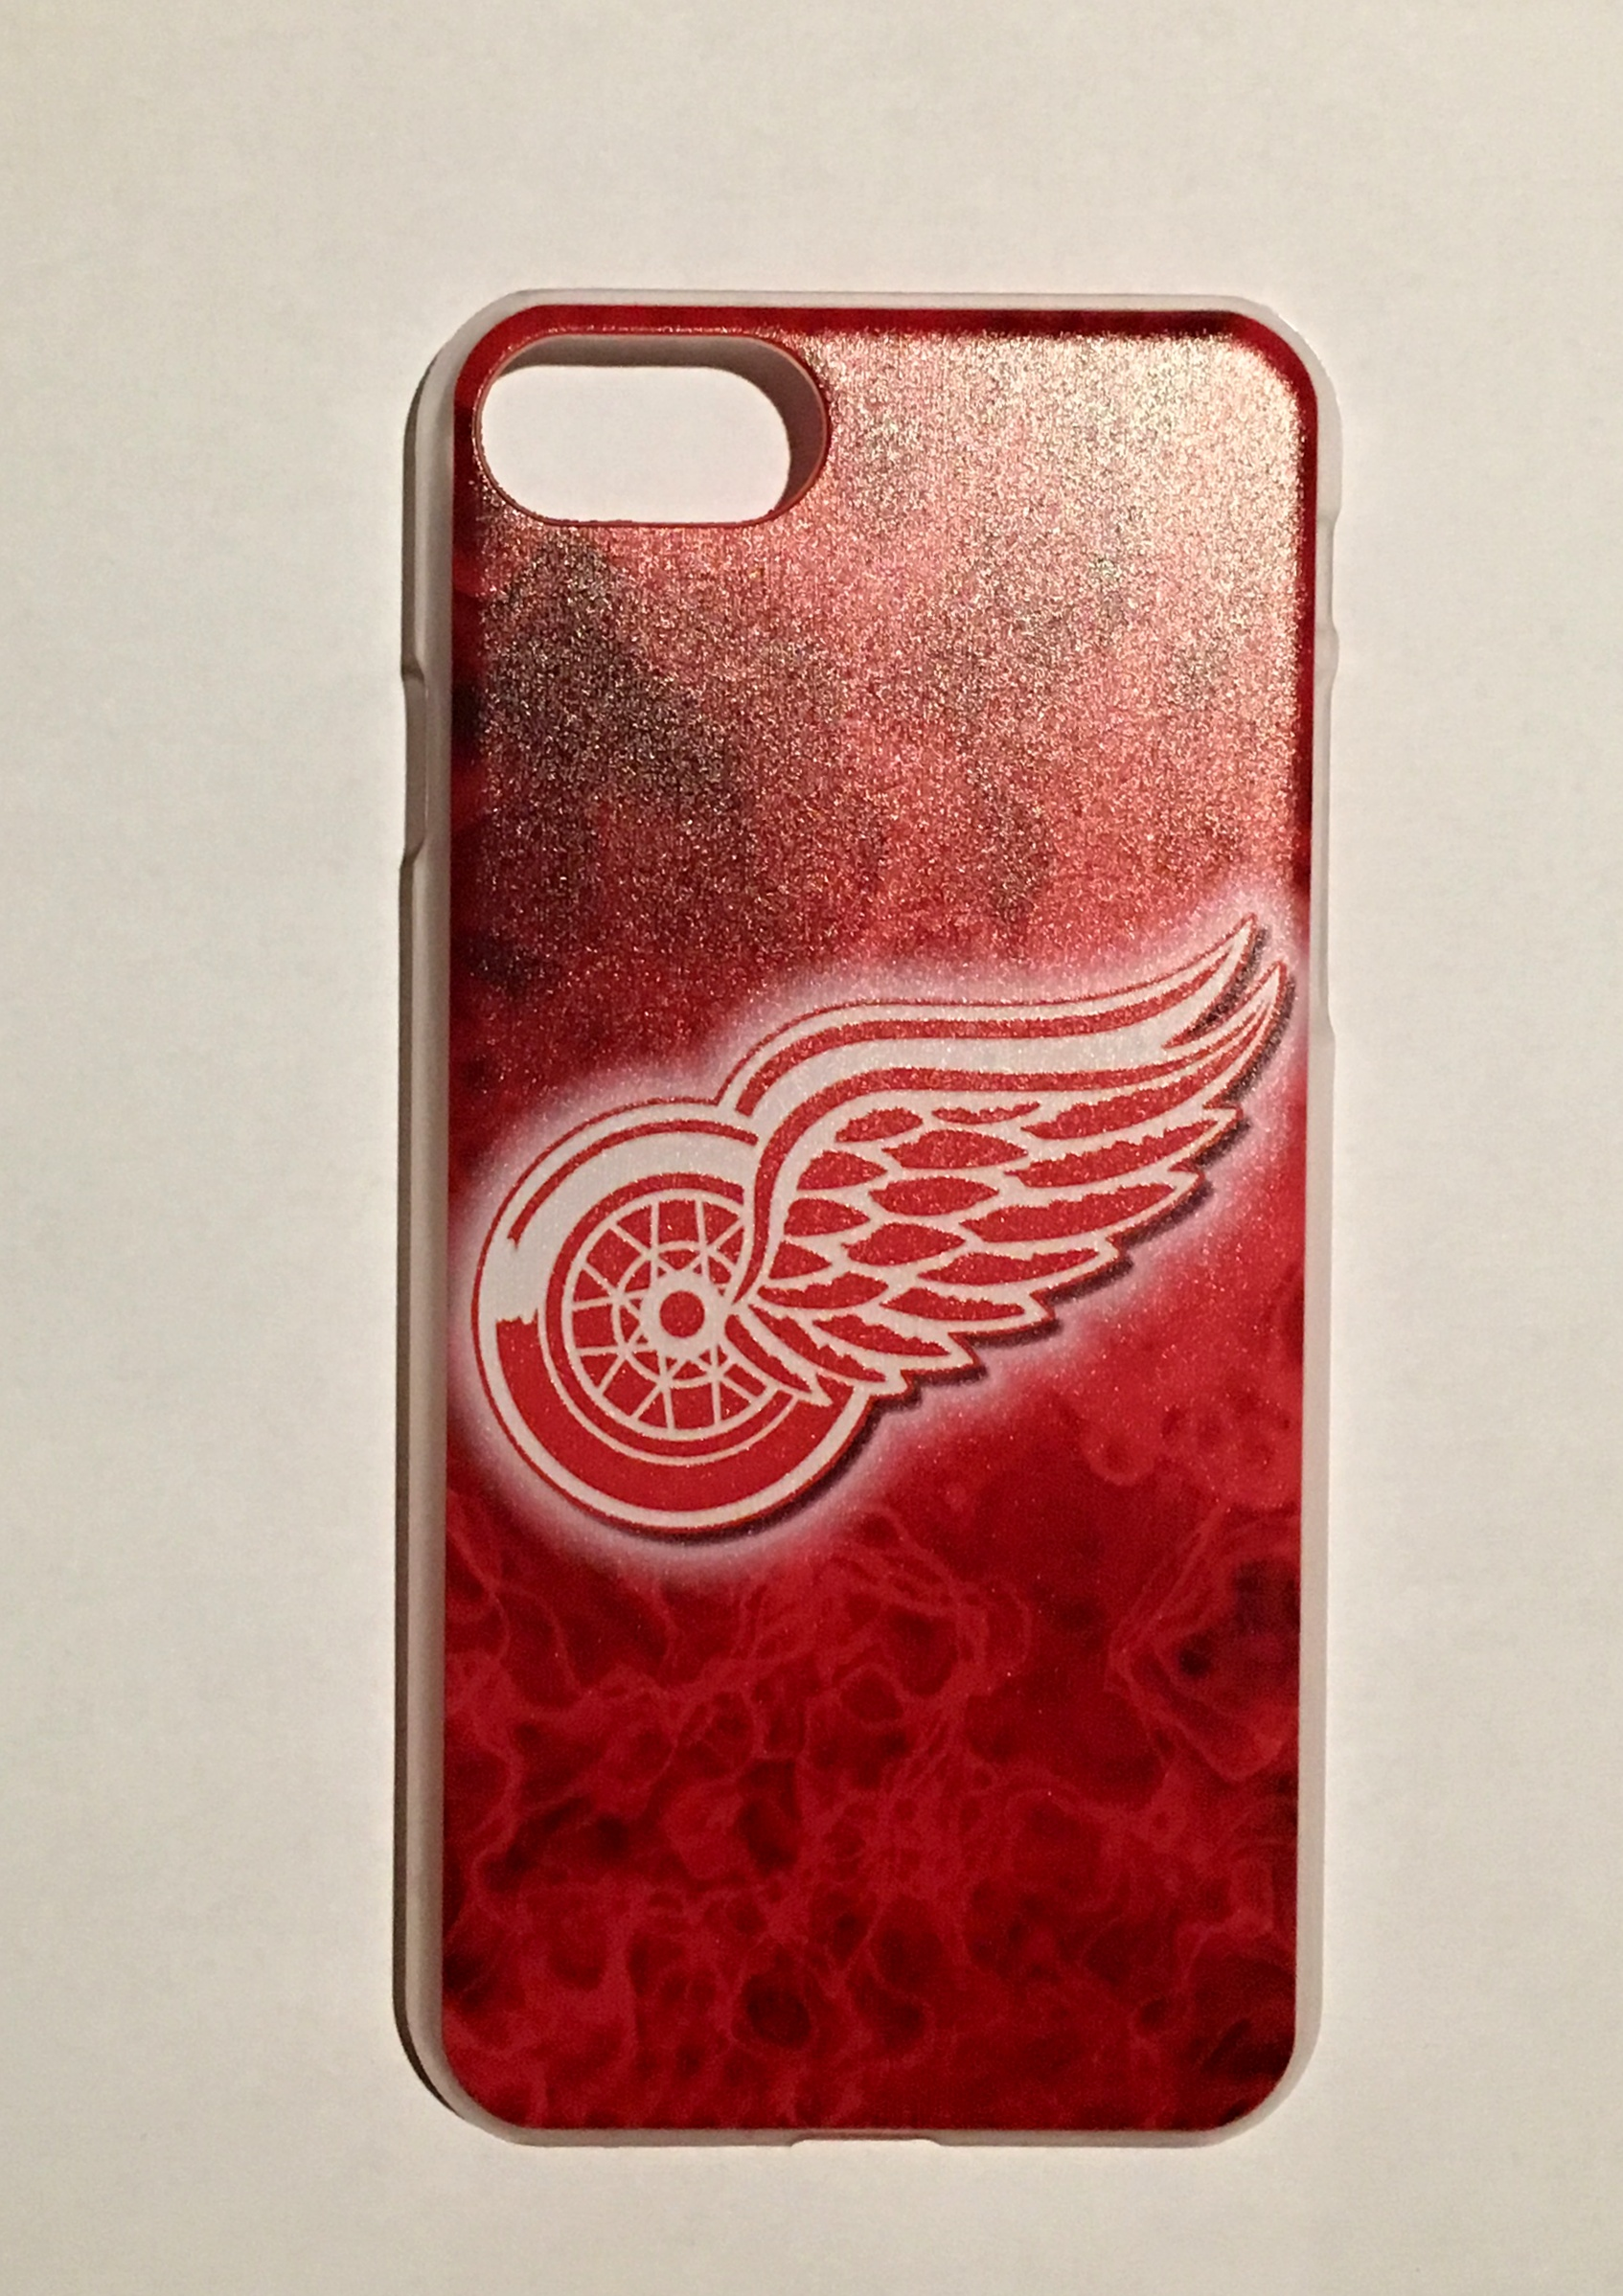 Detroit Red Wings kryt na iPhone 7 Plus / iPhone 8 Plus - SKLADOM